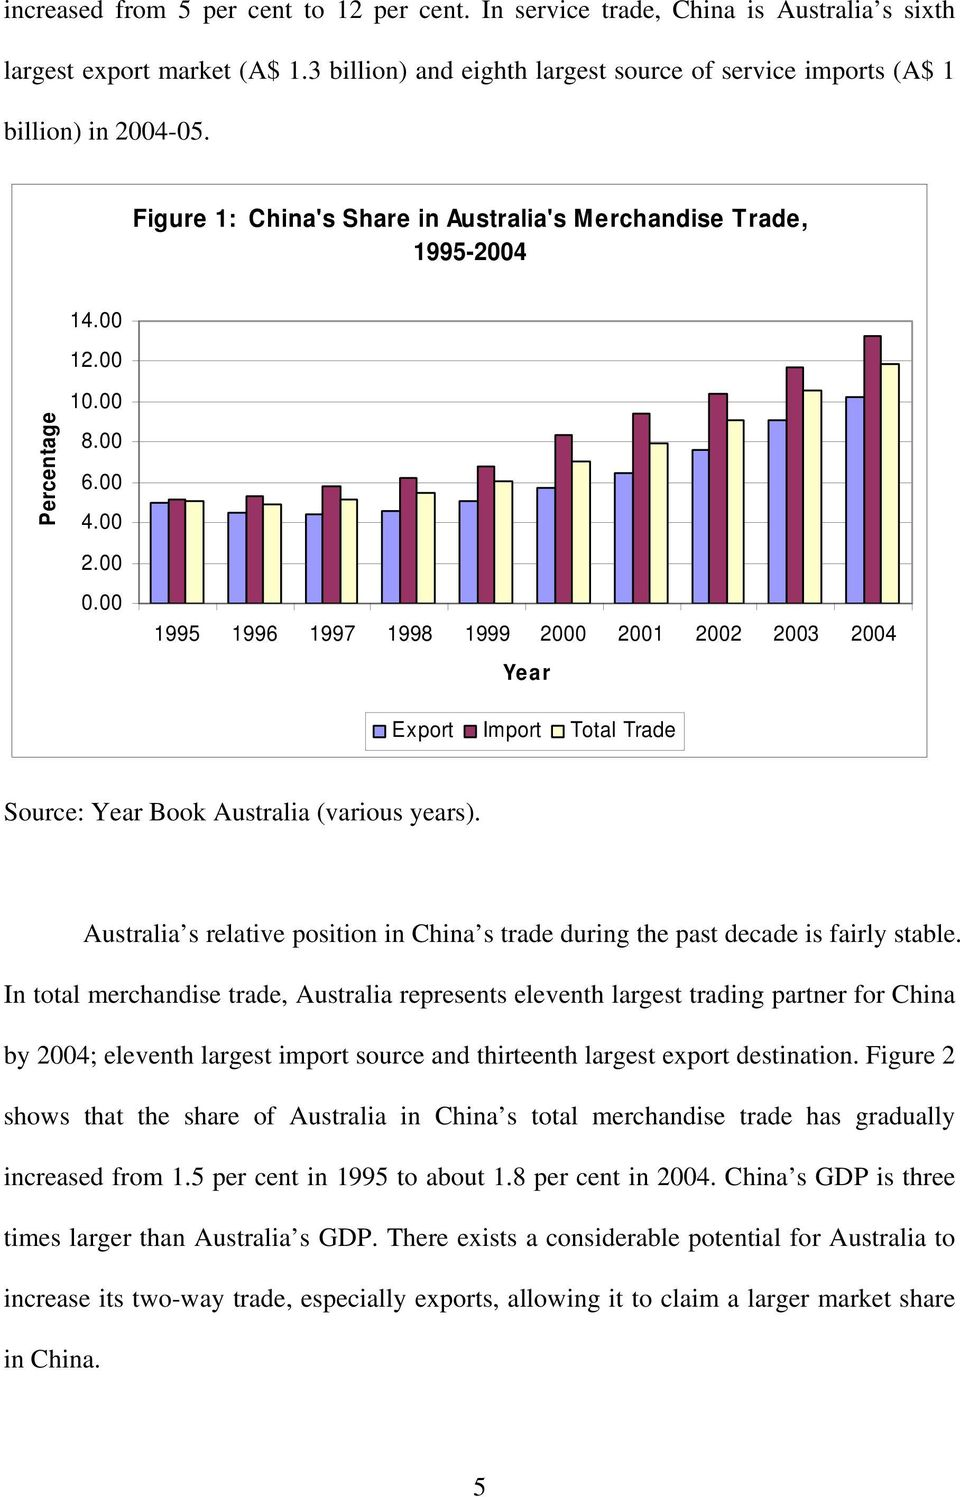 australias trade with china economics essay The government's answers came in a so-called white paper released   australia's heavy reliance on iron ore and energy exports to china has long   australia has tried to balance its growing economic dependence on china.